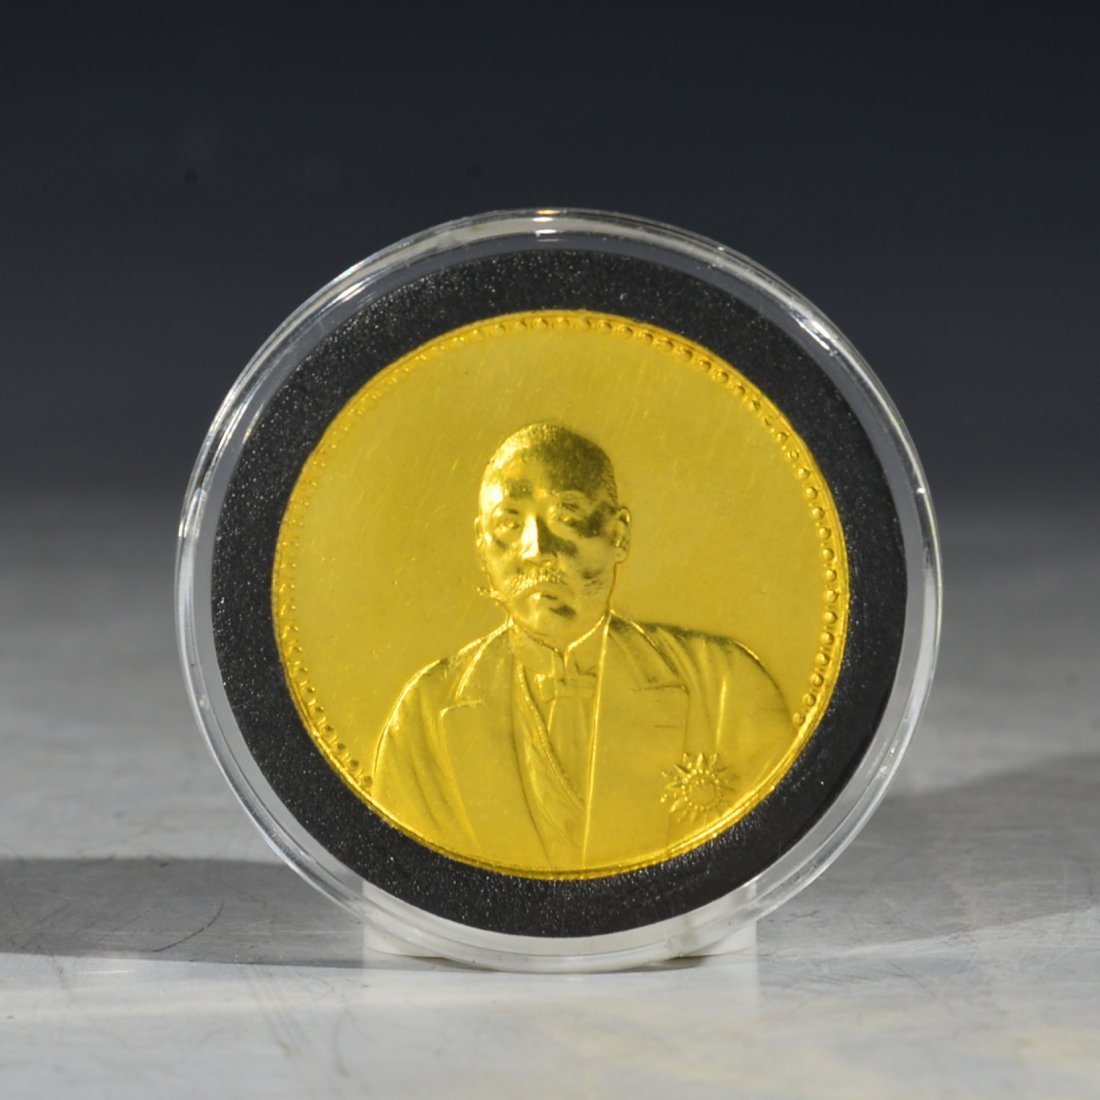 Chinese 24K Gold Coin